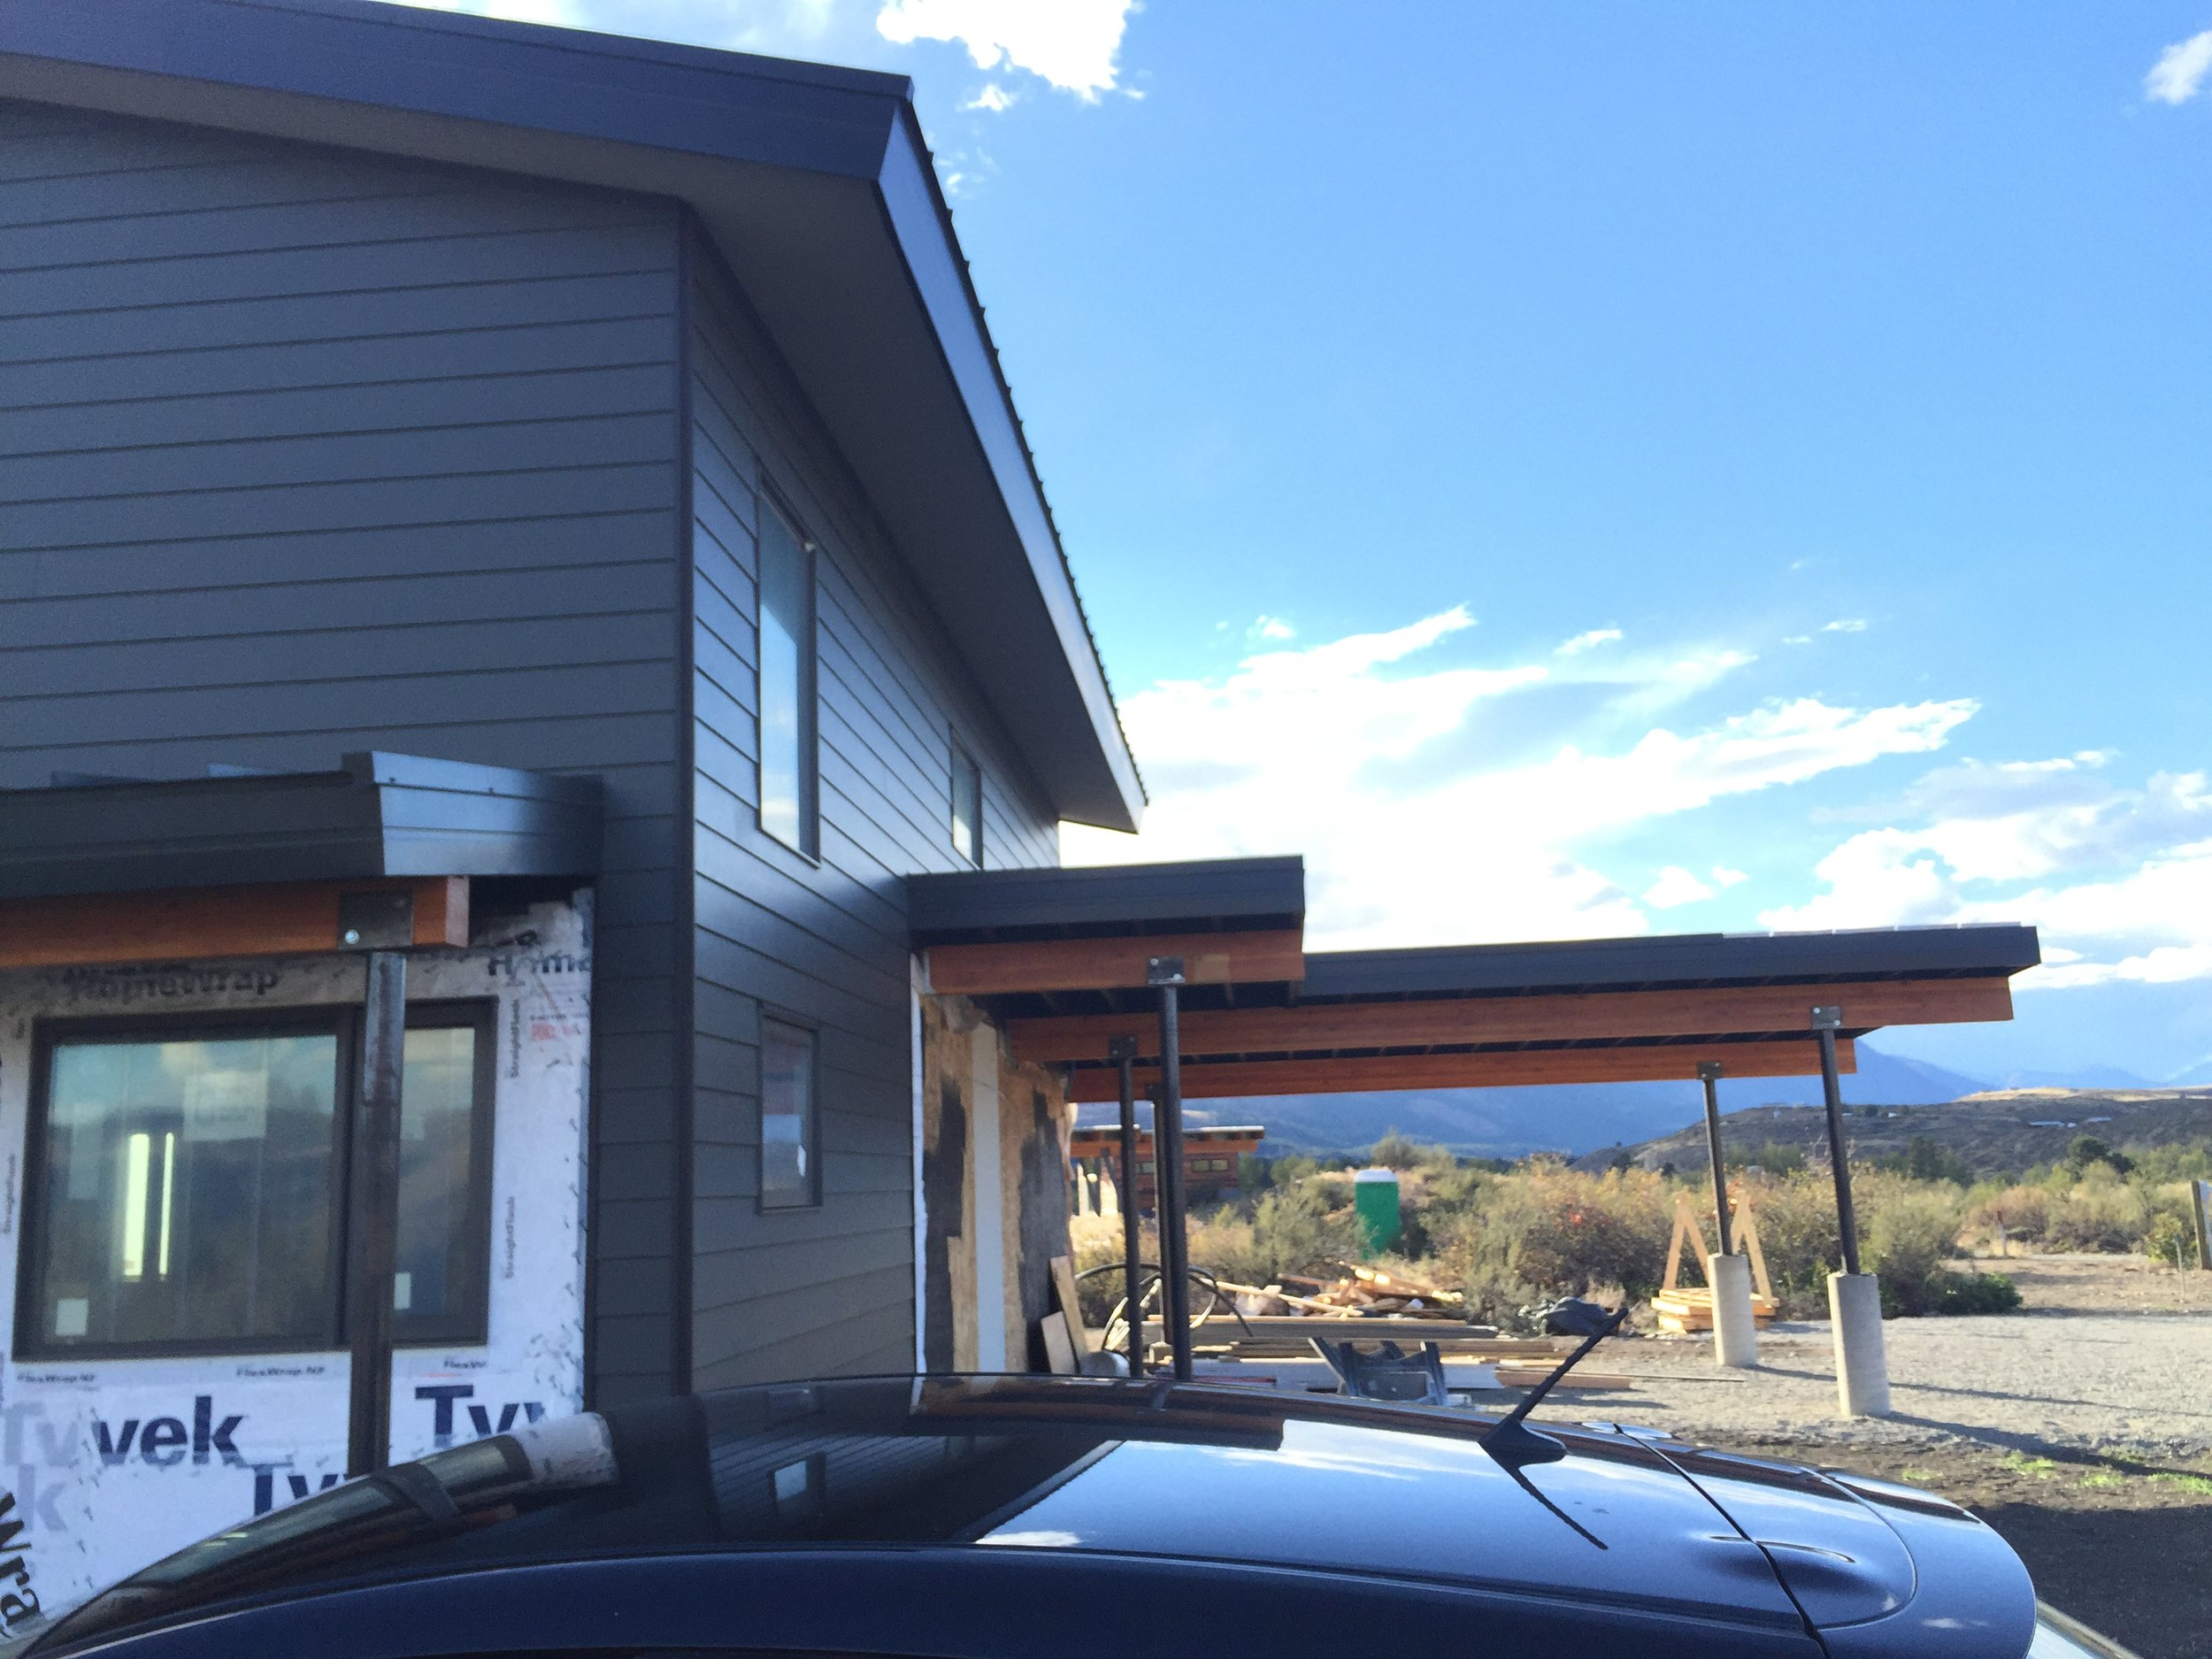 The carport will eventually have enclosed storage for skis and bikes under the section closest to the house.